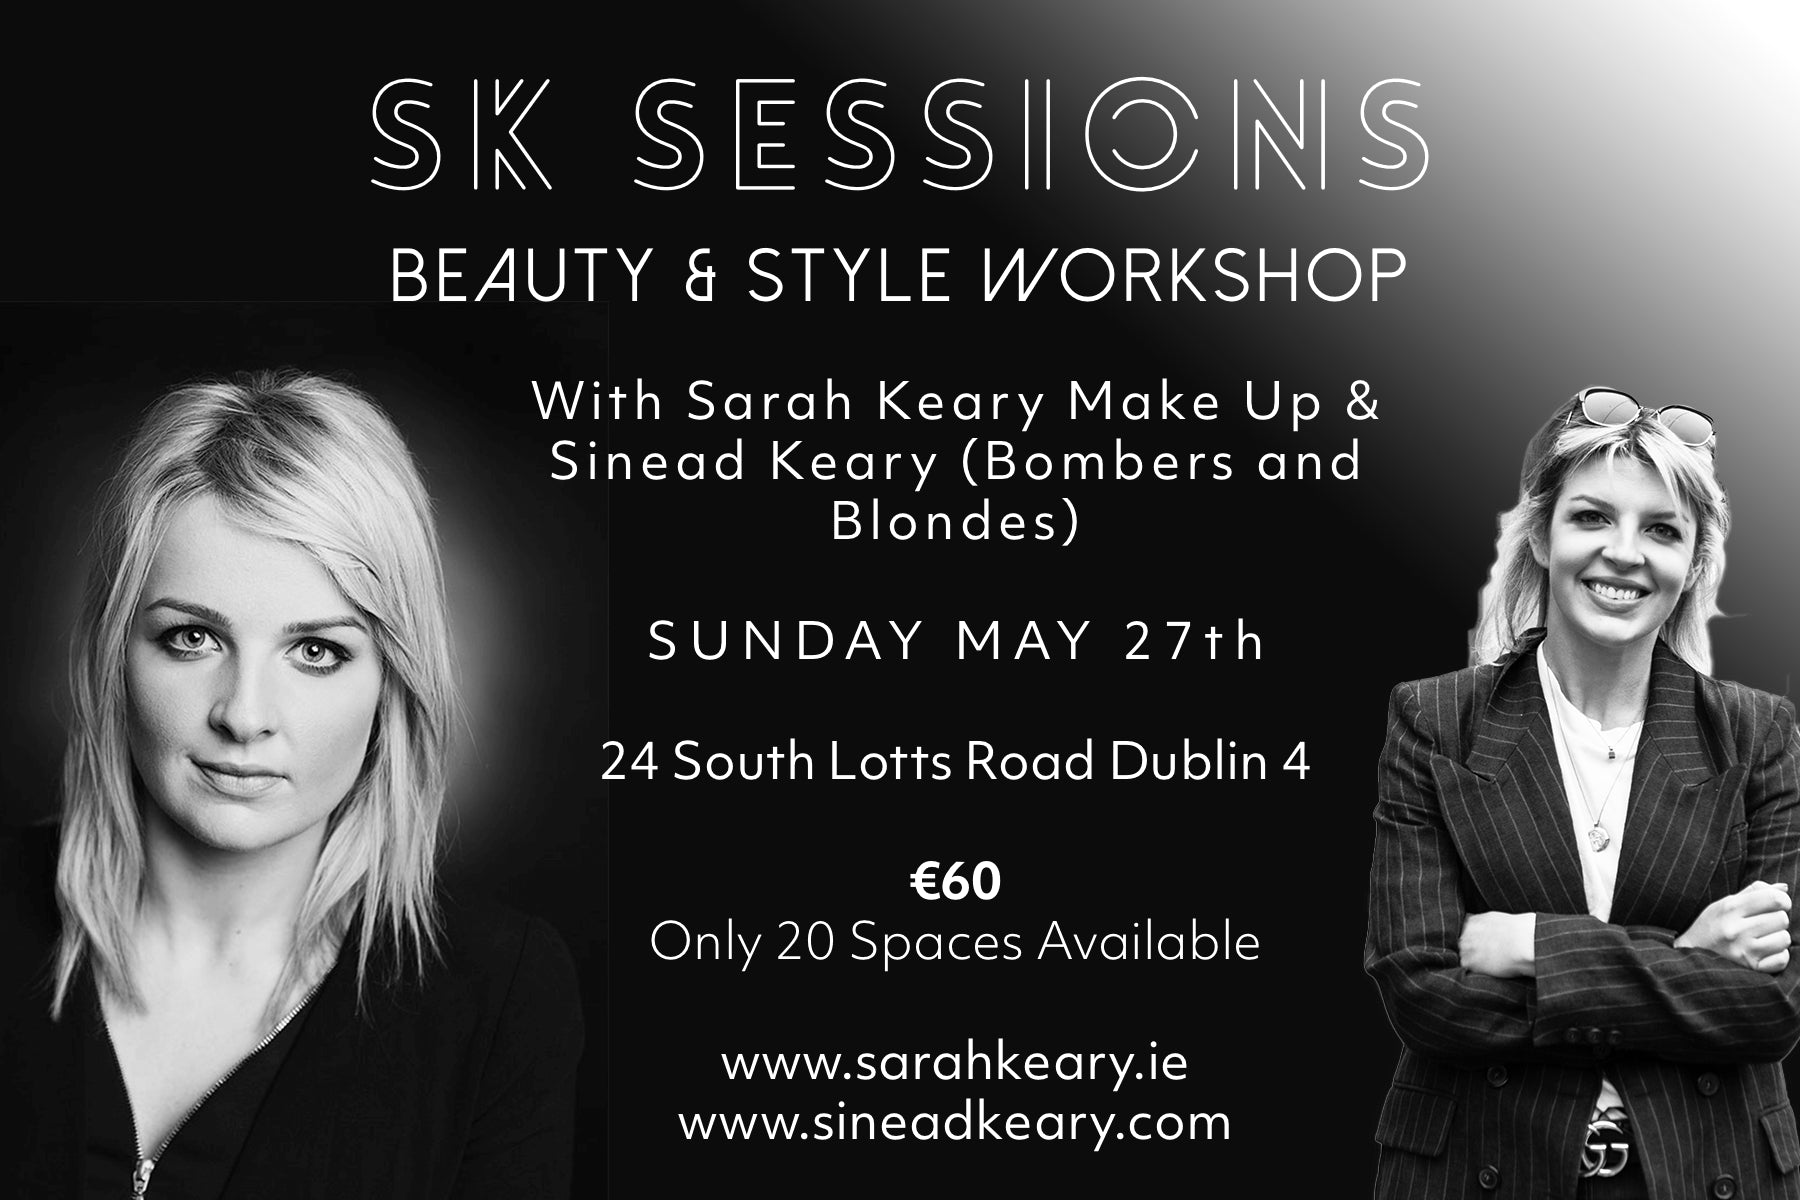 Beauty & Style Workshop Dublin – Sarah Keary